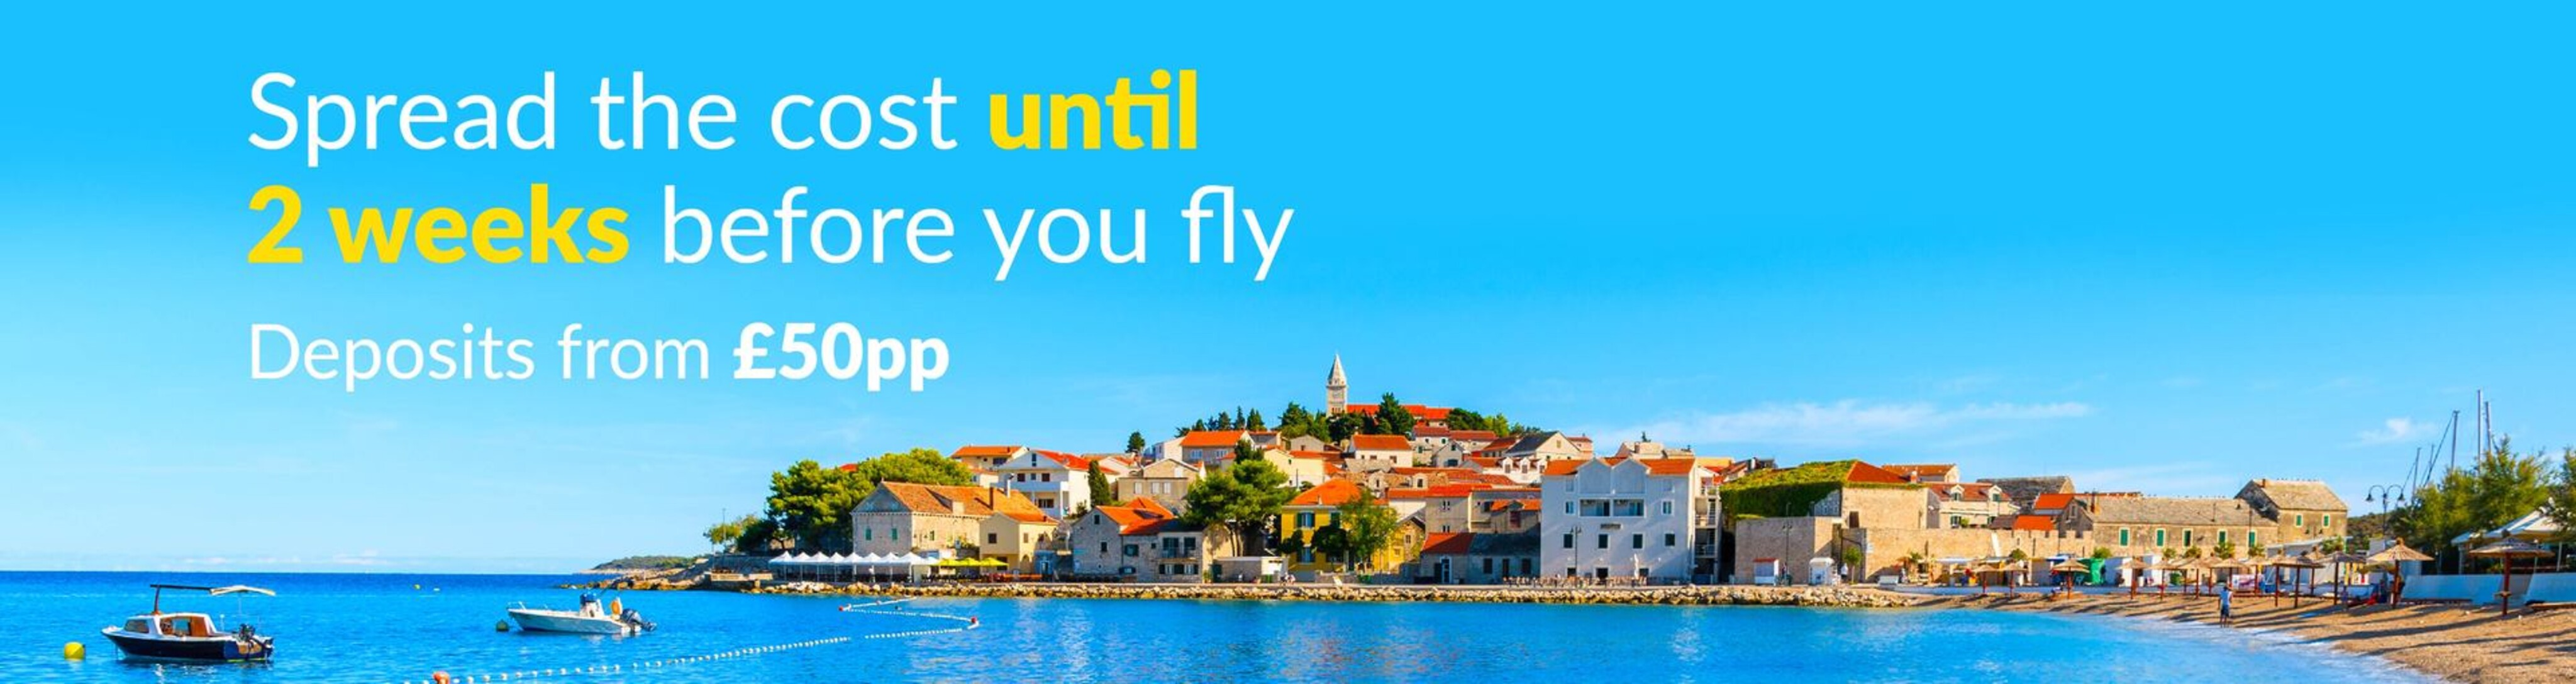 Low Deposit Holidays Cheap Deposit Holidays From On The